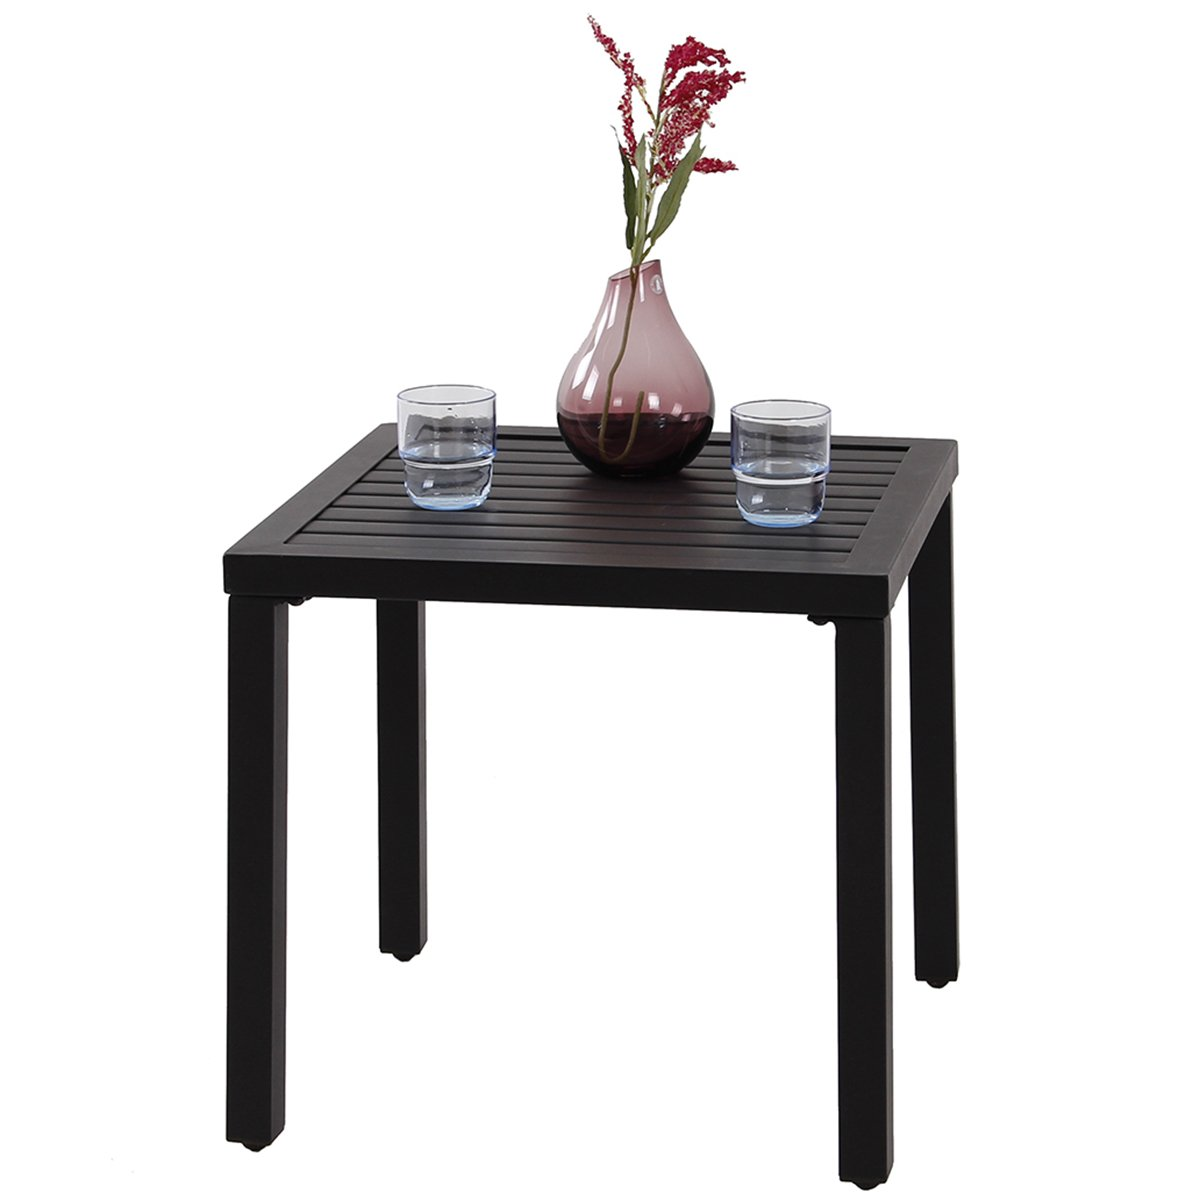 PHI VILLA Indoor Outdoor Small Metal Square Side/End Table, Patio Coffee Bistro Table, Black by PHI VILLA